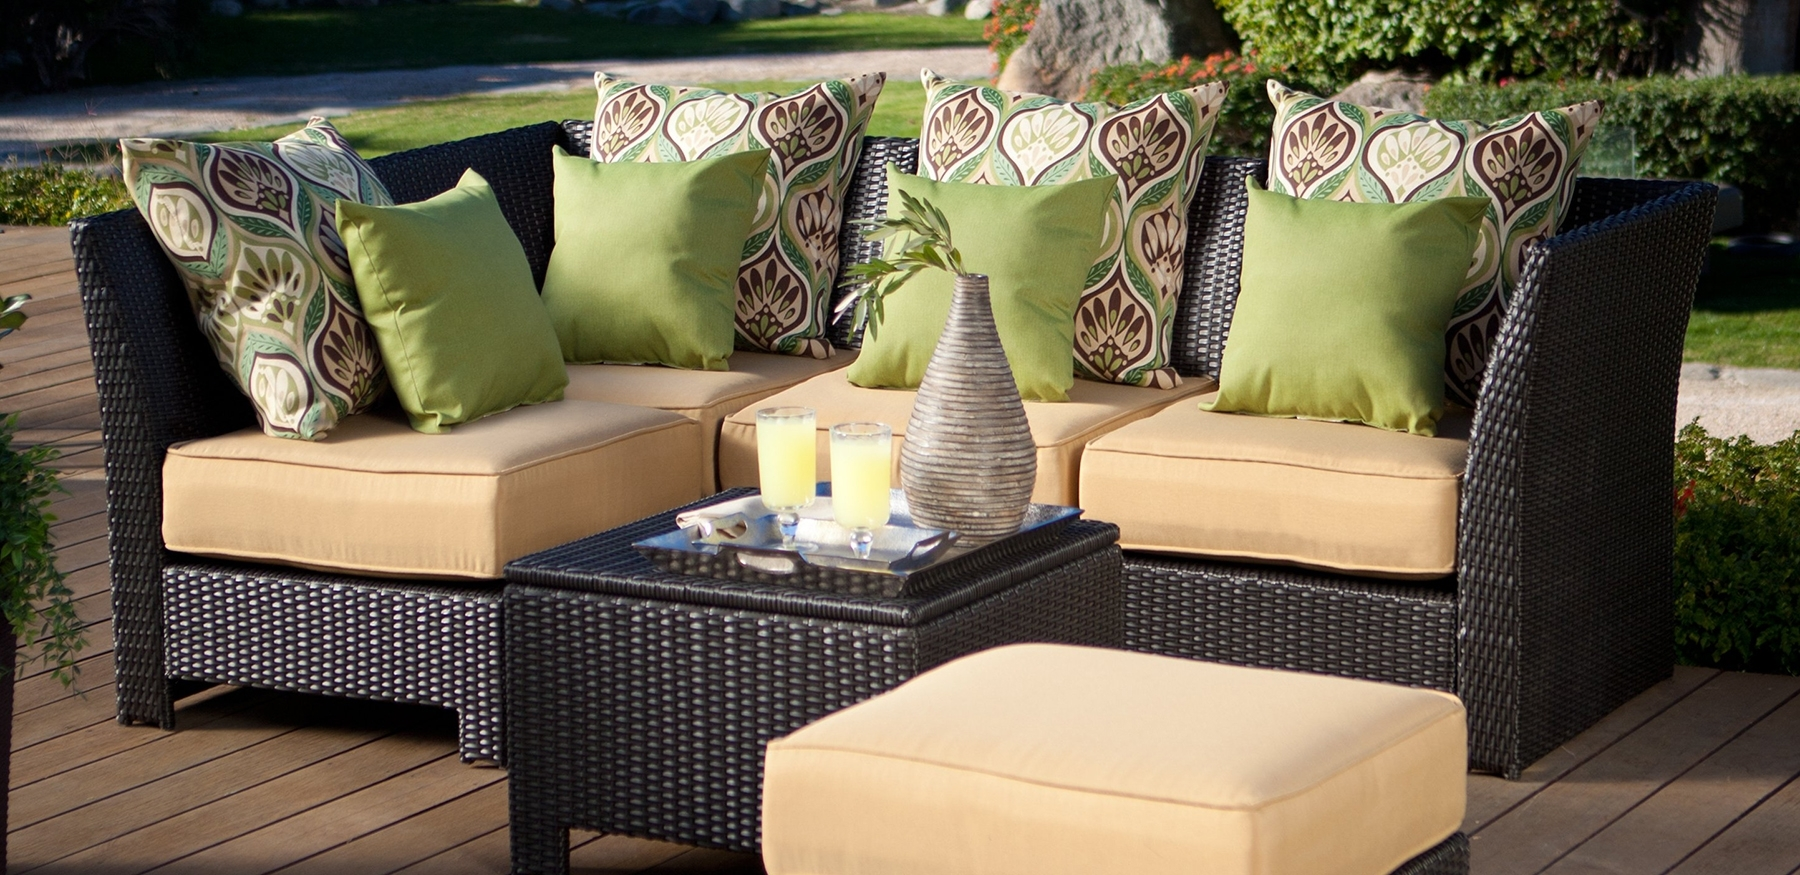 Widely Used Stylish Weaves – Kansas City Homes & Style Inside Nfm Patio Conversation Sets (View 7 of 15)